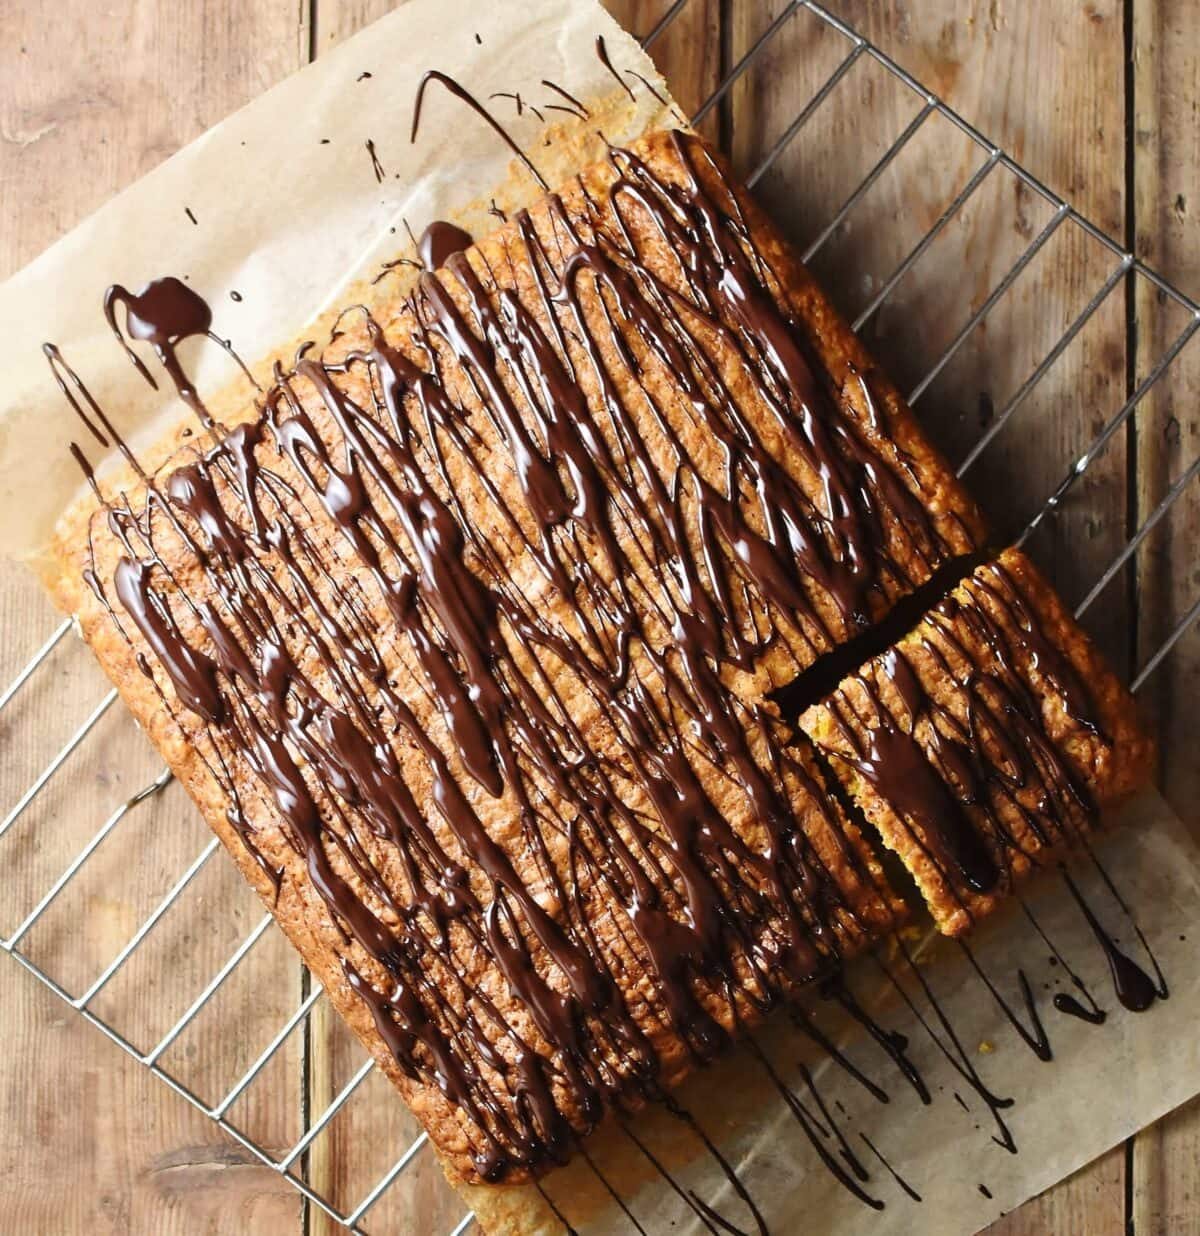 Square shaped cake with chocolate drizzle on top of parchment paper.